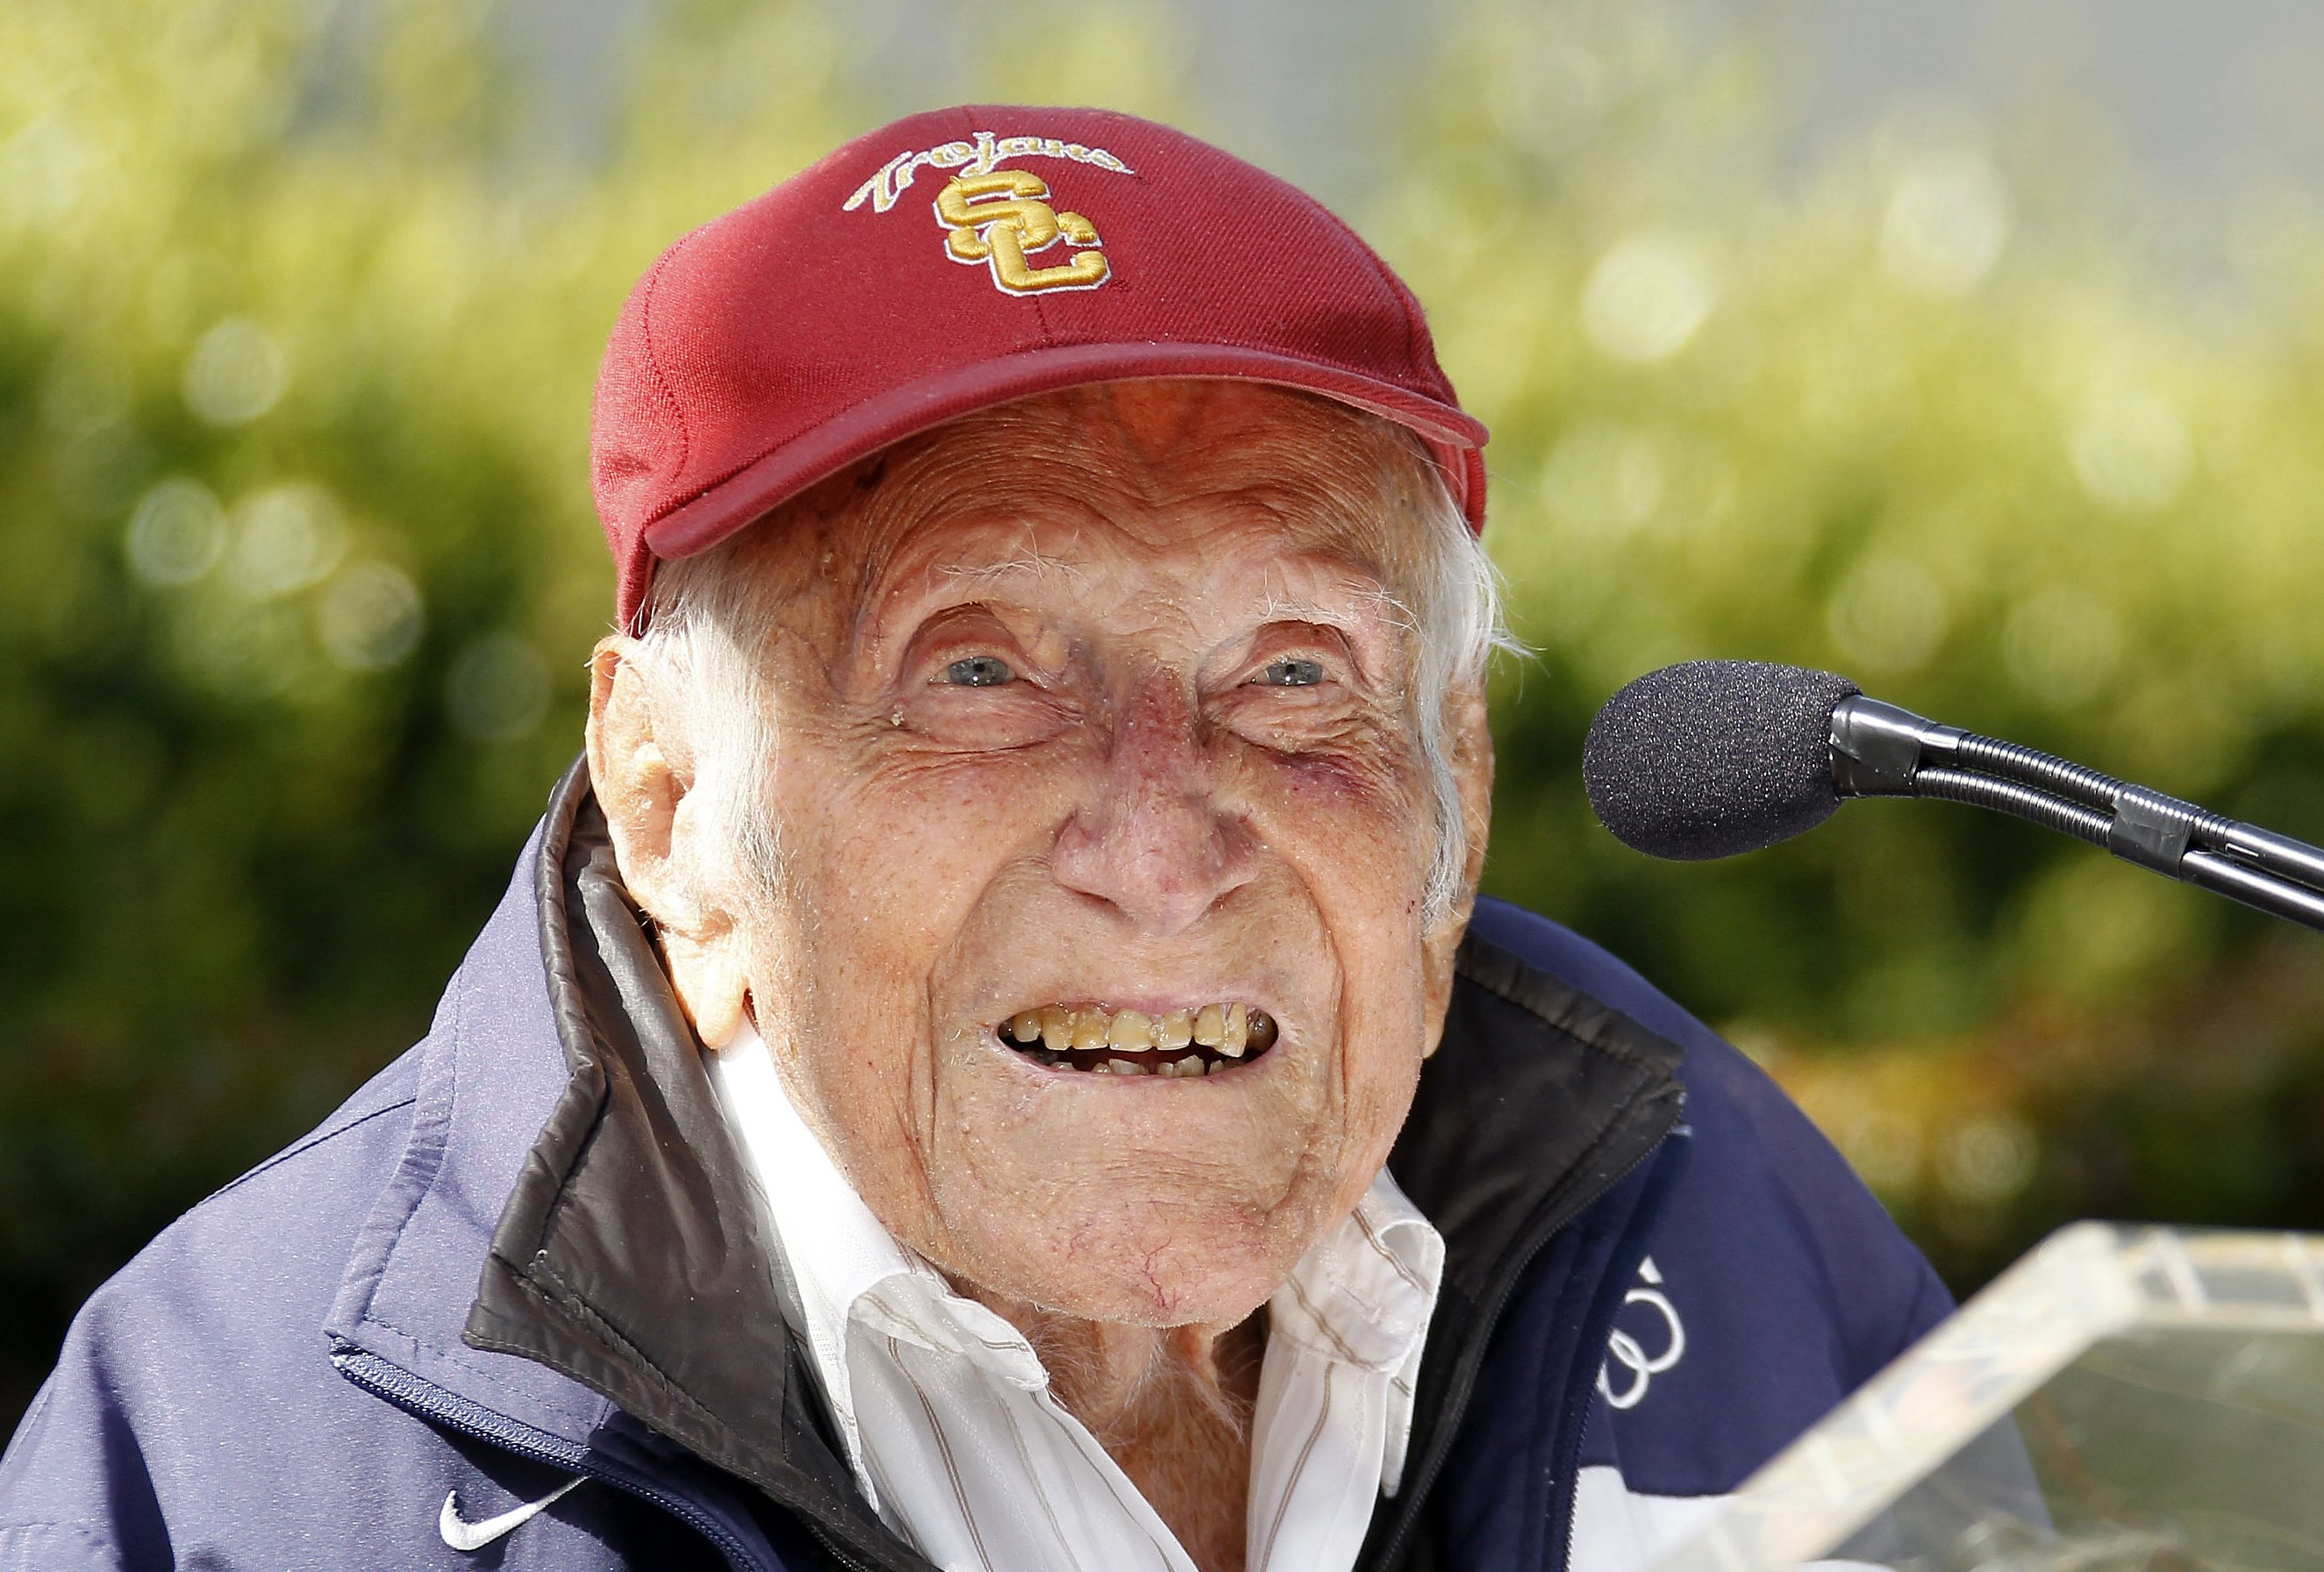 Louis Zamperini gestures during a news conference, in Pasadena, Calif. Zamperini, a U.S. Olympic distance runner and World War II veteran who survived 47 days on a raft in the Pacific after his bomber crashed, then endured two years in Japanese prison camps, died Wednesday, July 2, 2014.